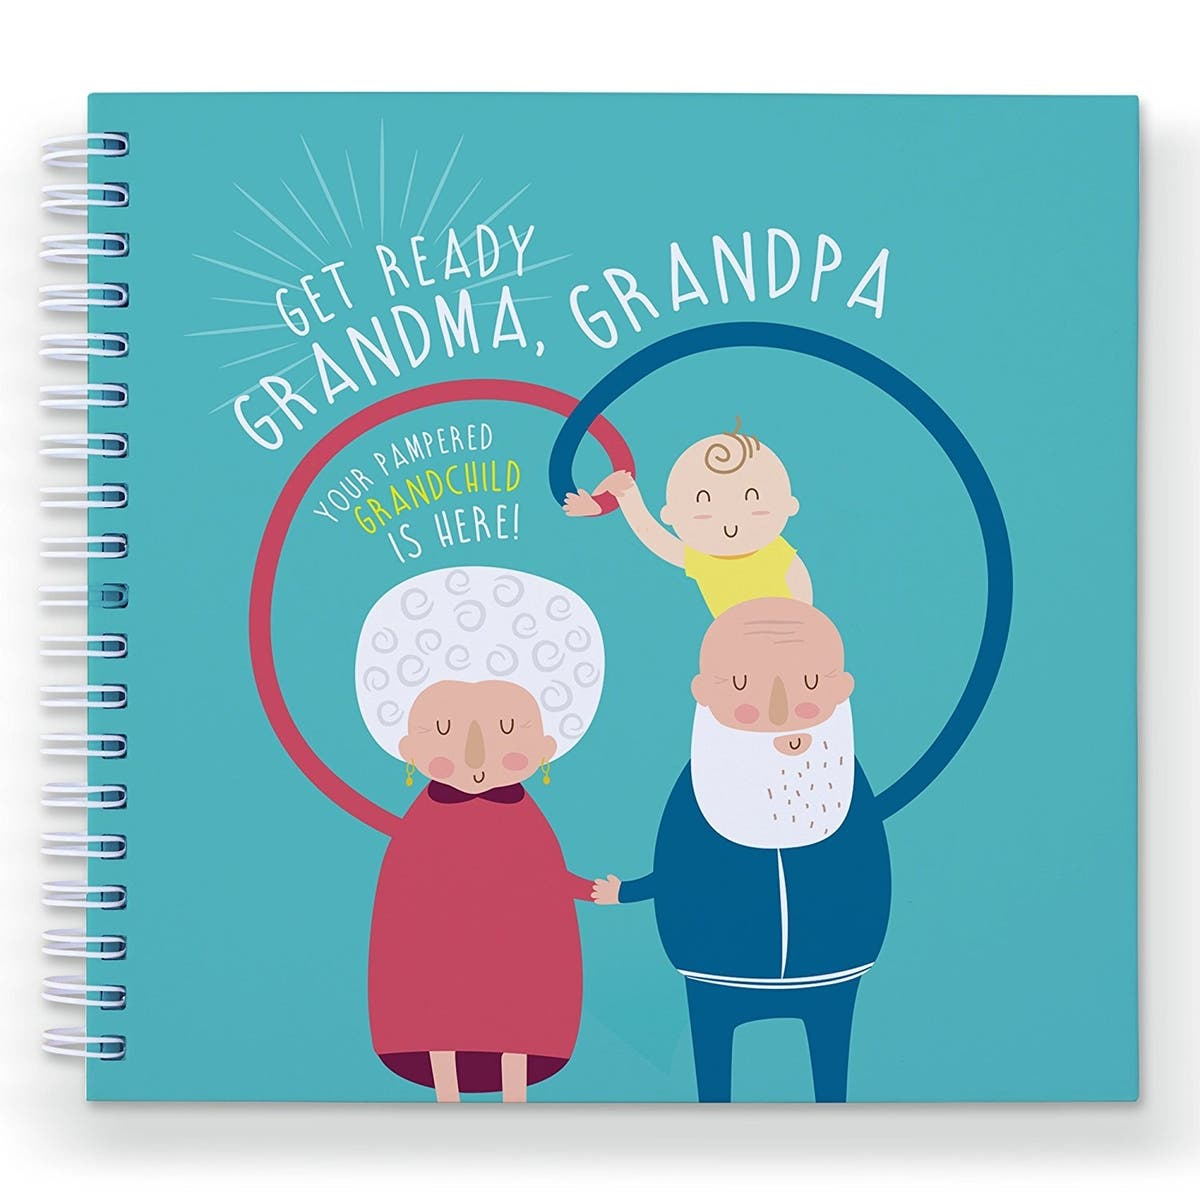 Holiday 2017: The Best Gifts For Grandparents | DealTown, US Patch